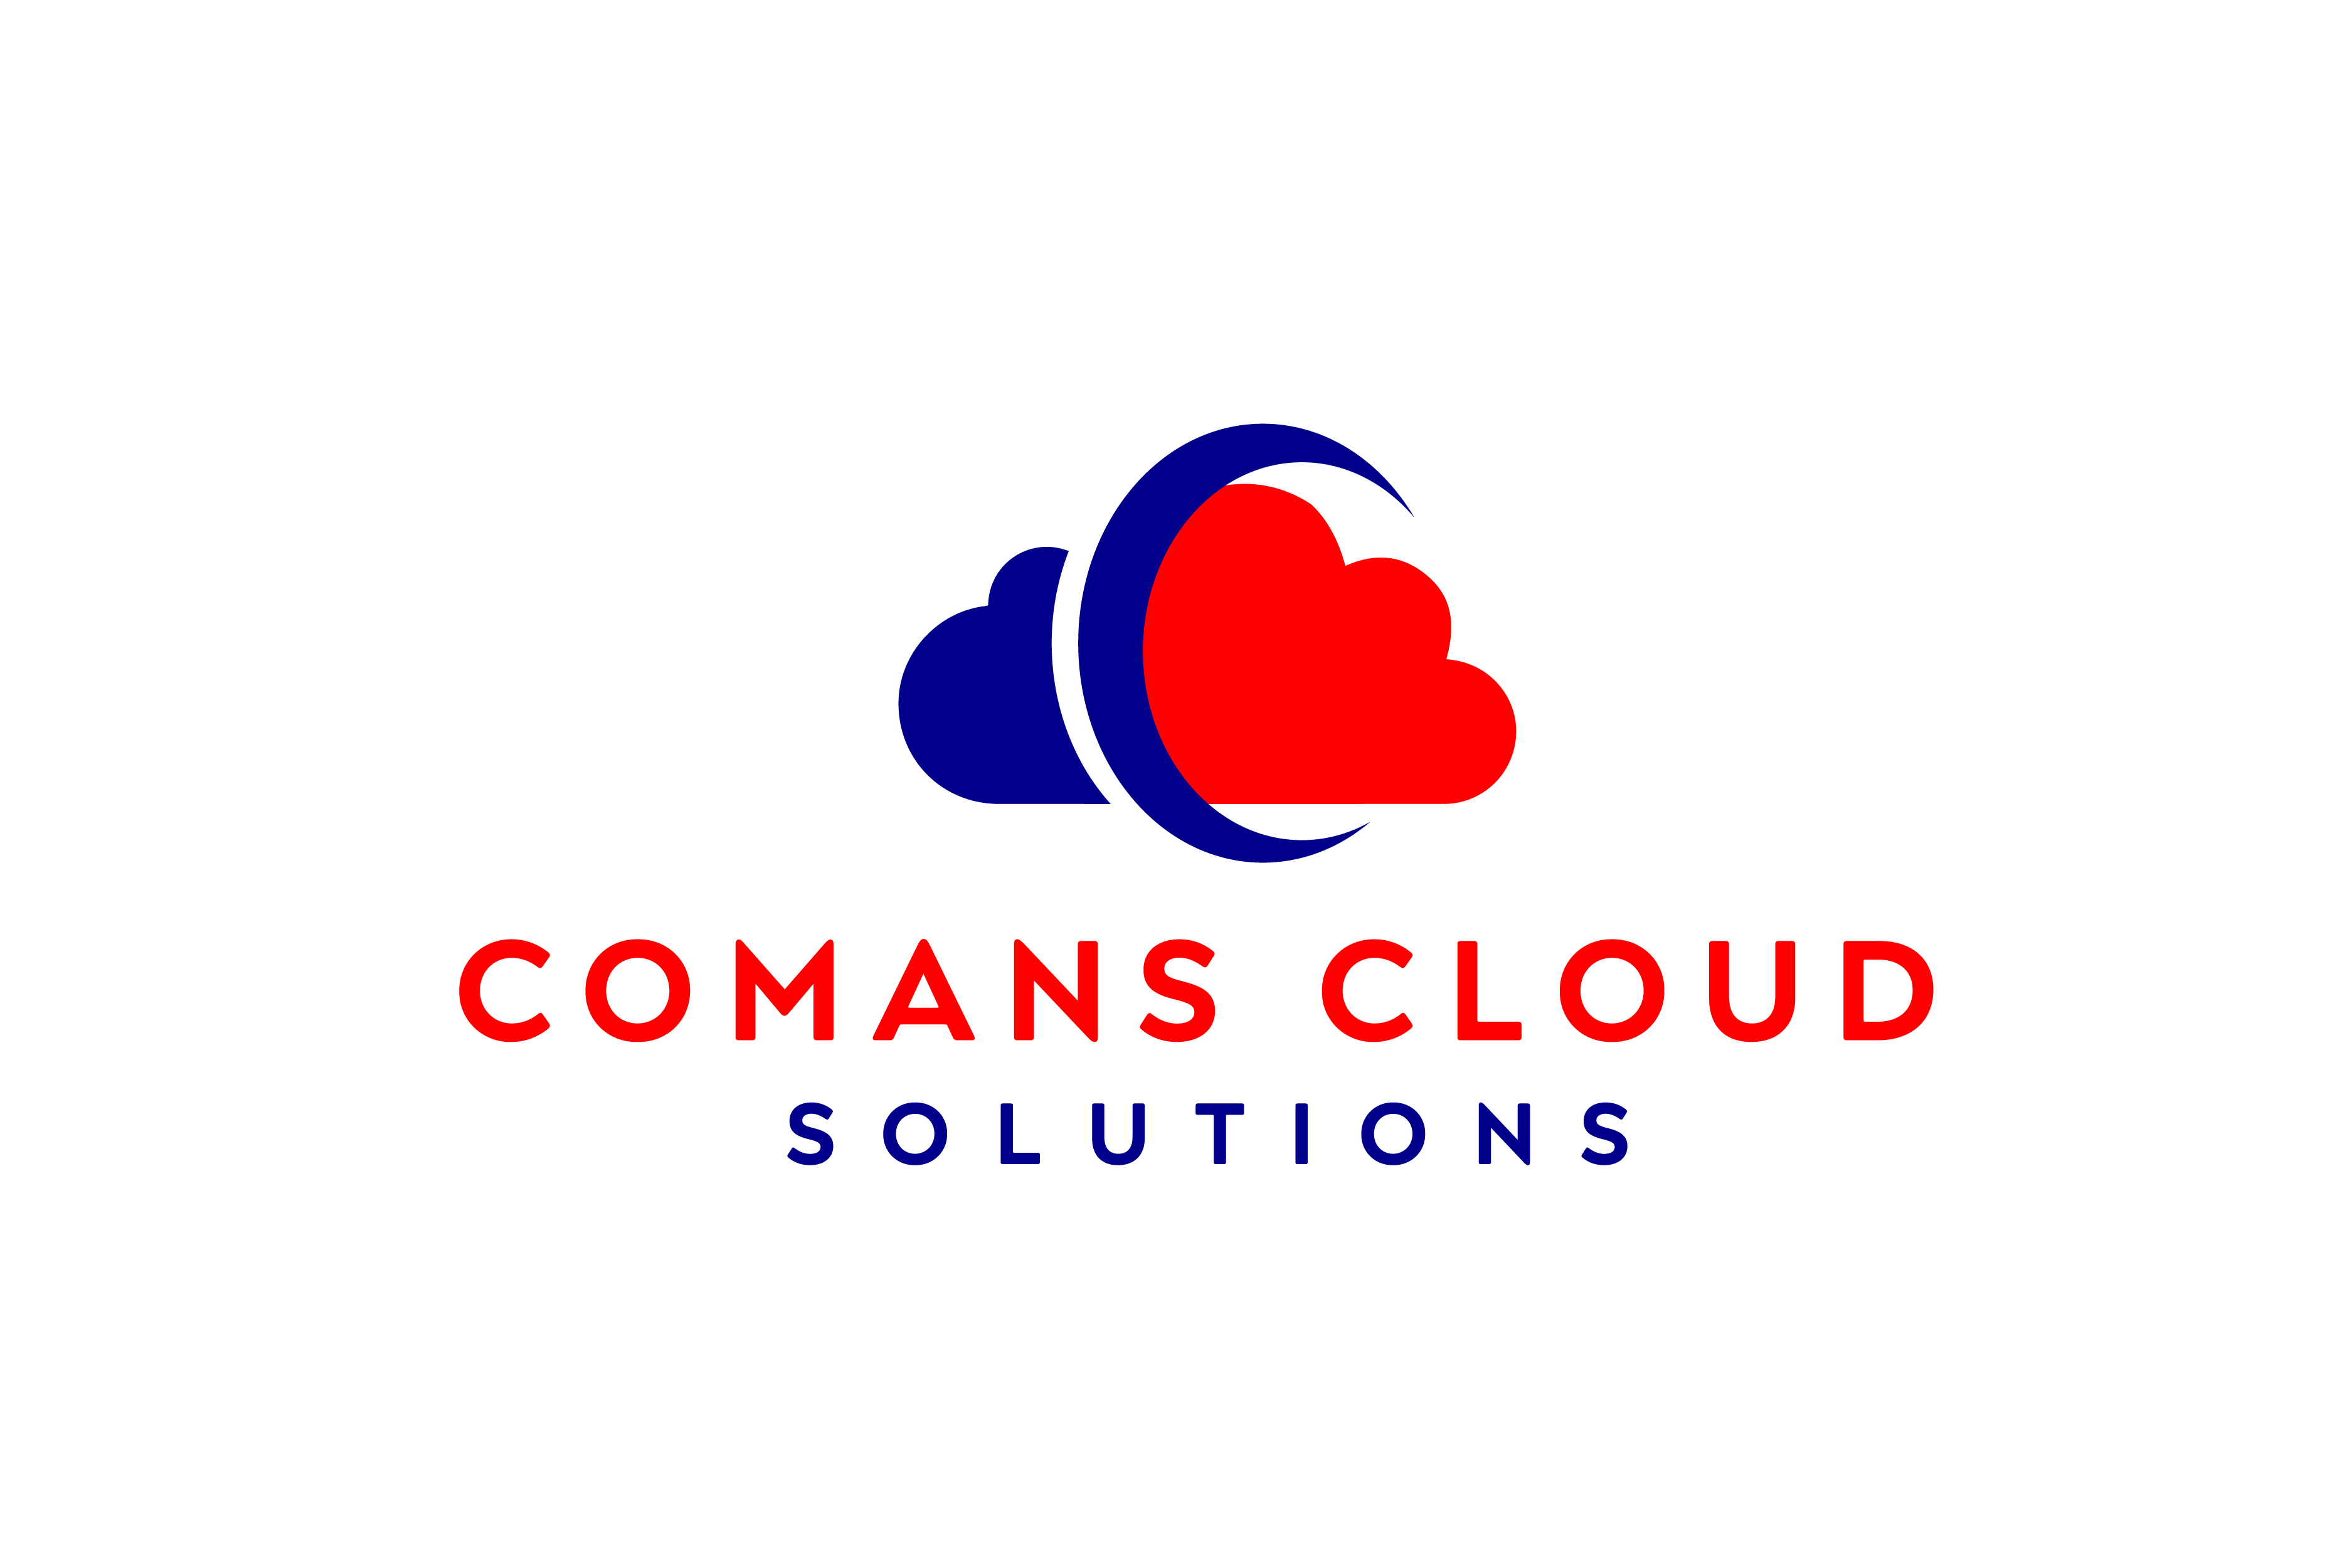 Comans Cloud Solutions